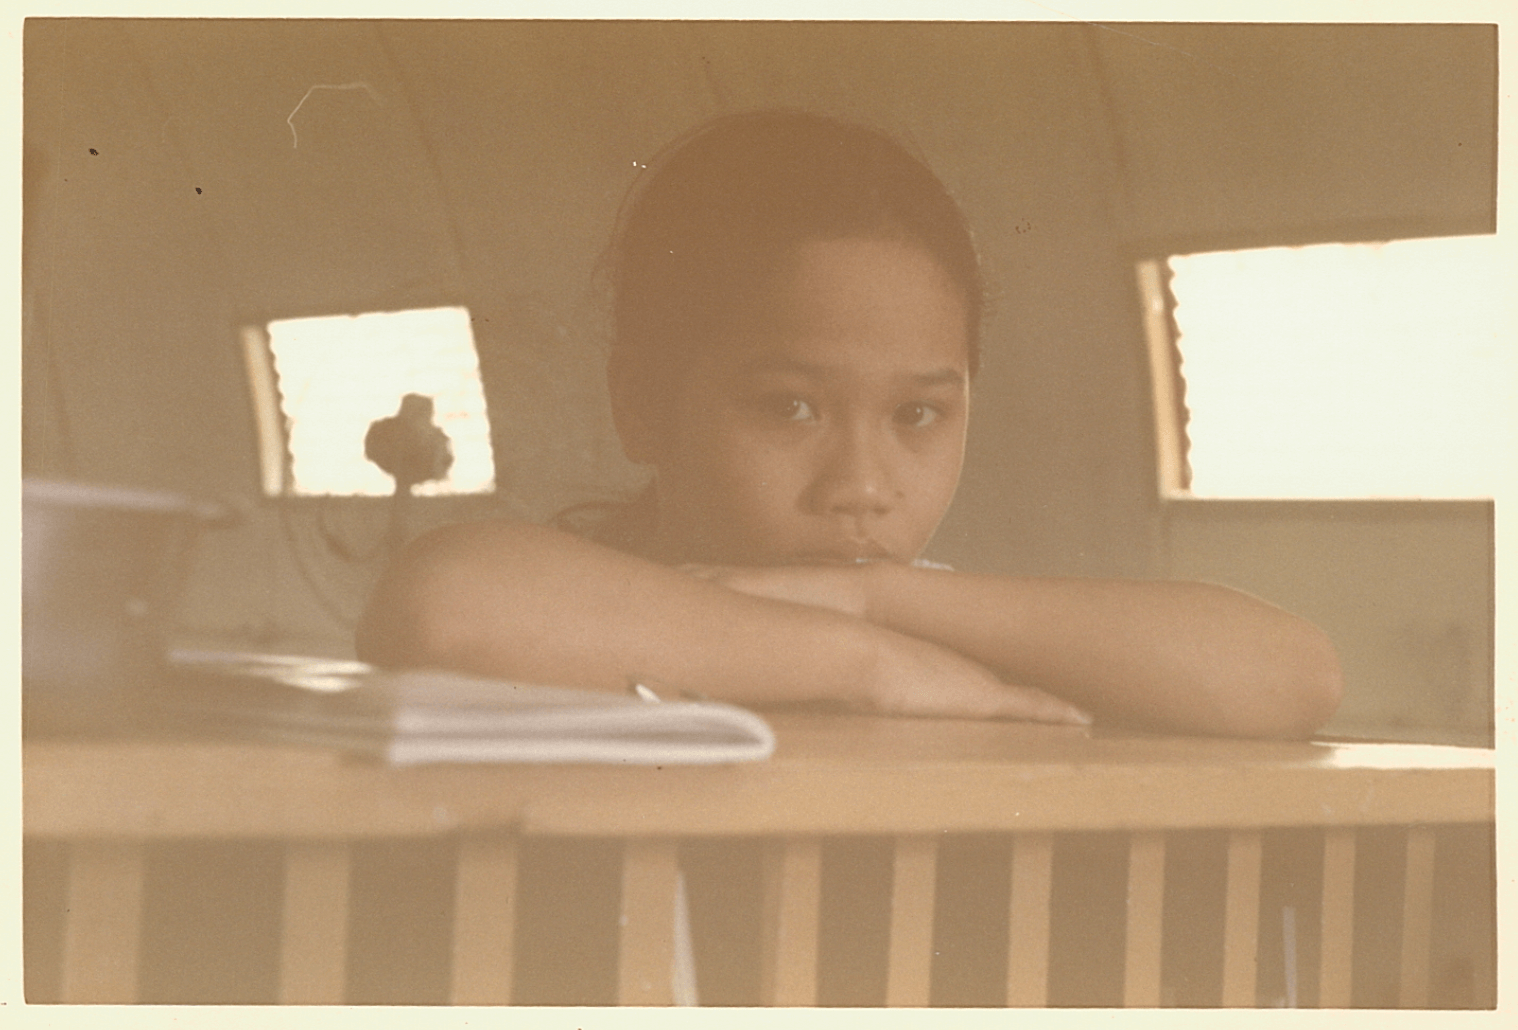 A young Asian girl peers somberly over her bed toward the camera.